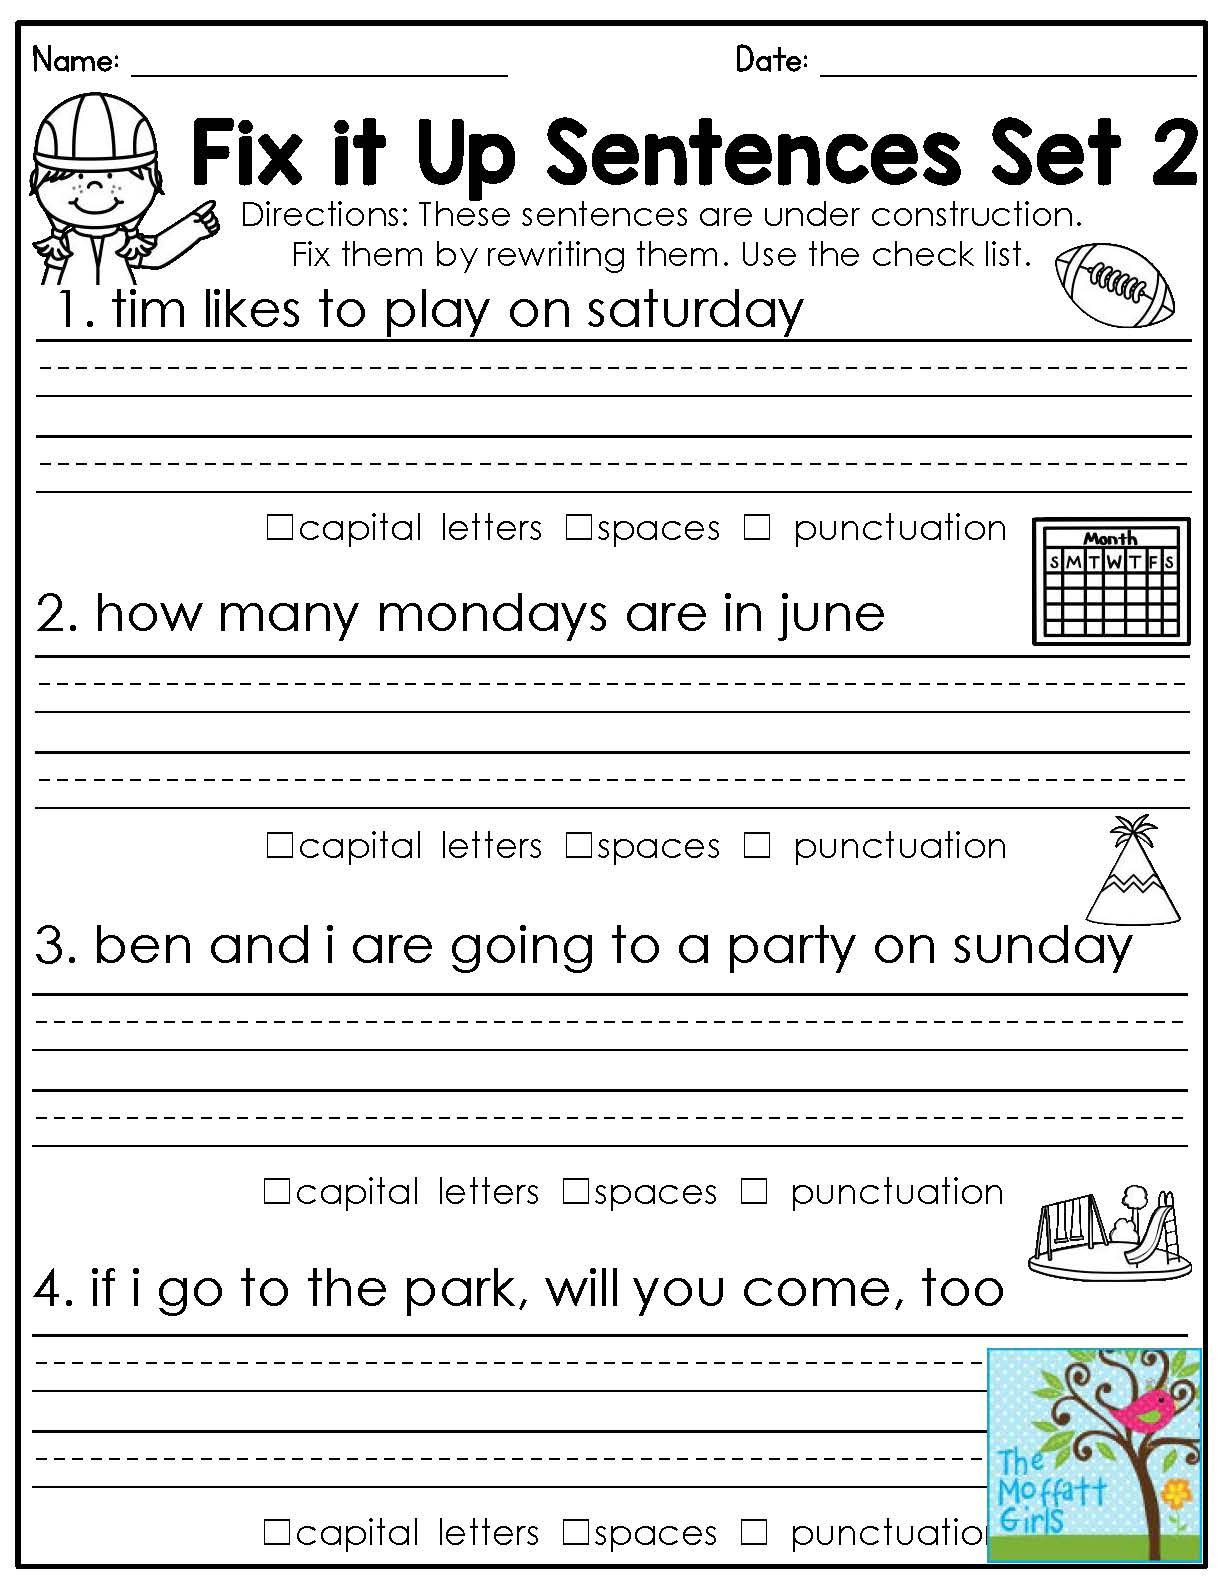 2nd Grade Grammar Worksheets Free Mastering Grammar and Language Arts